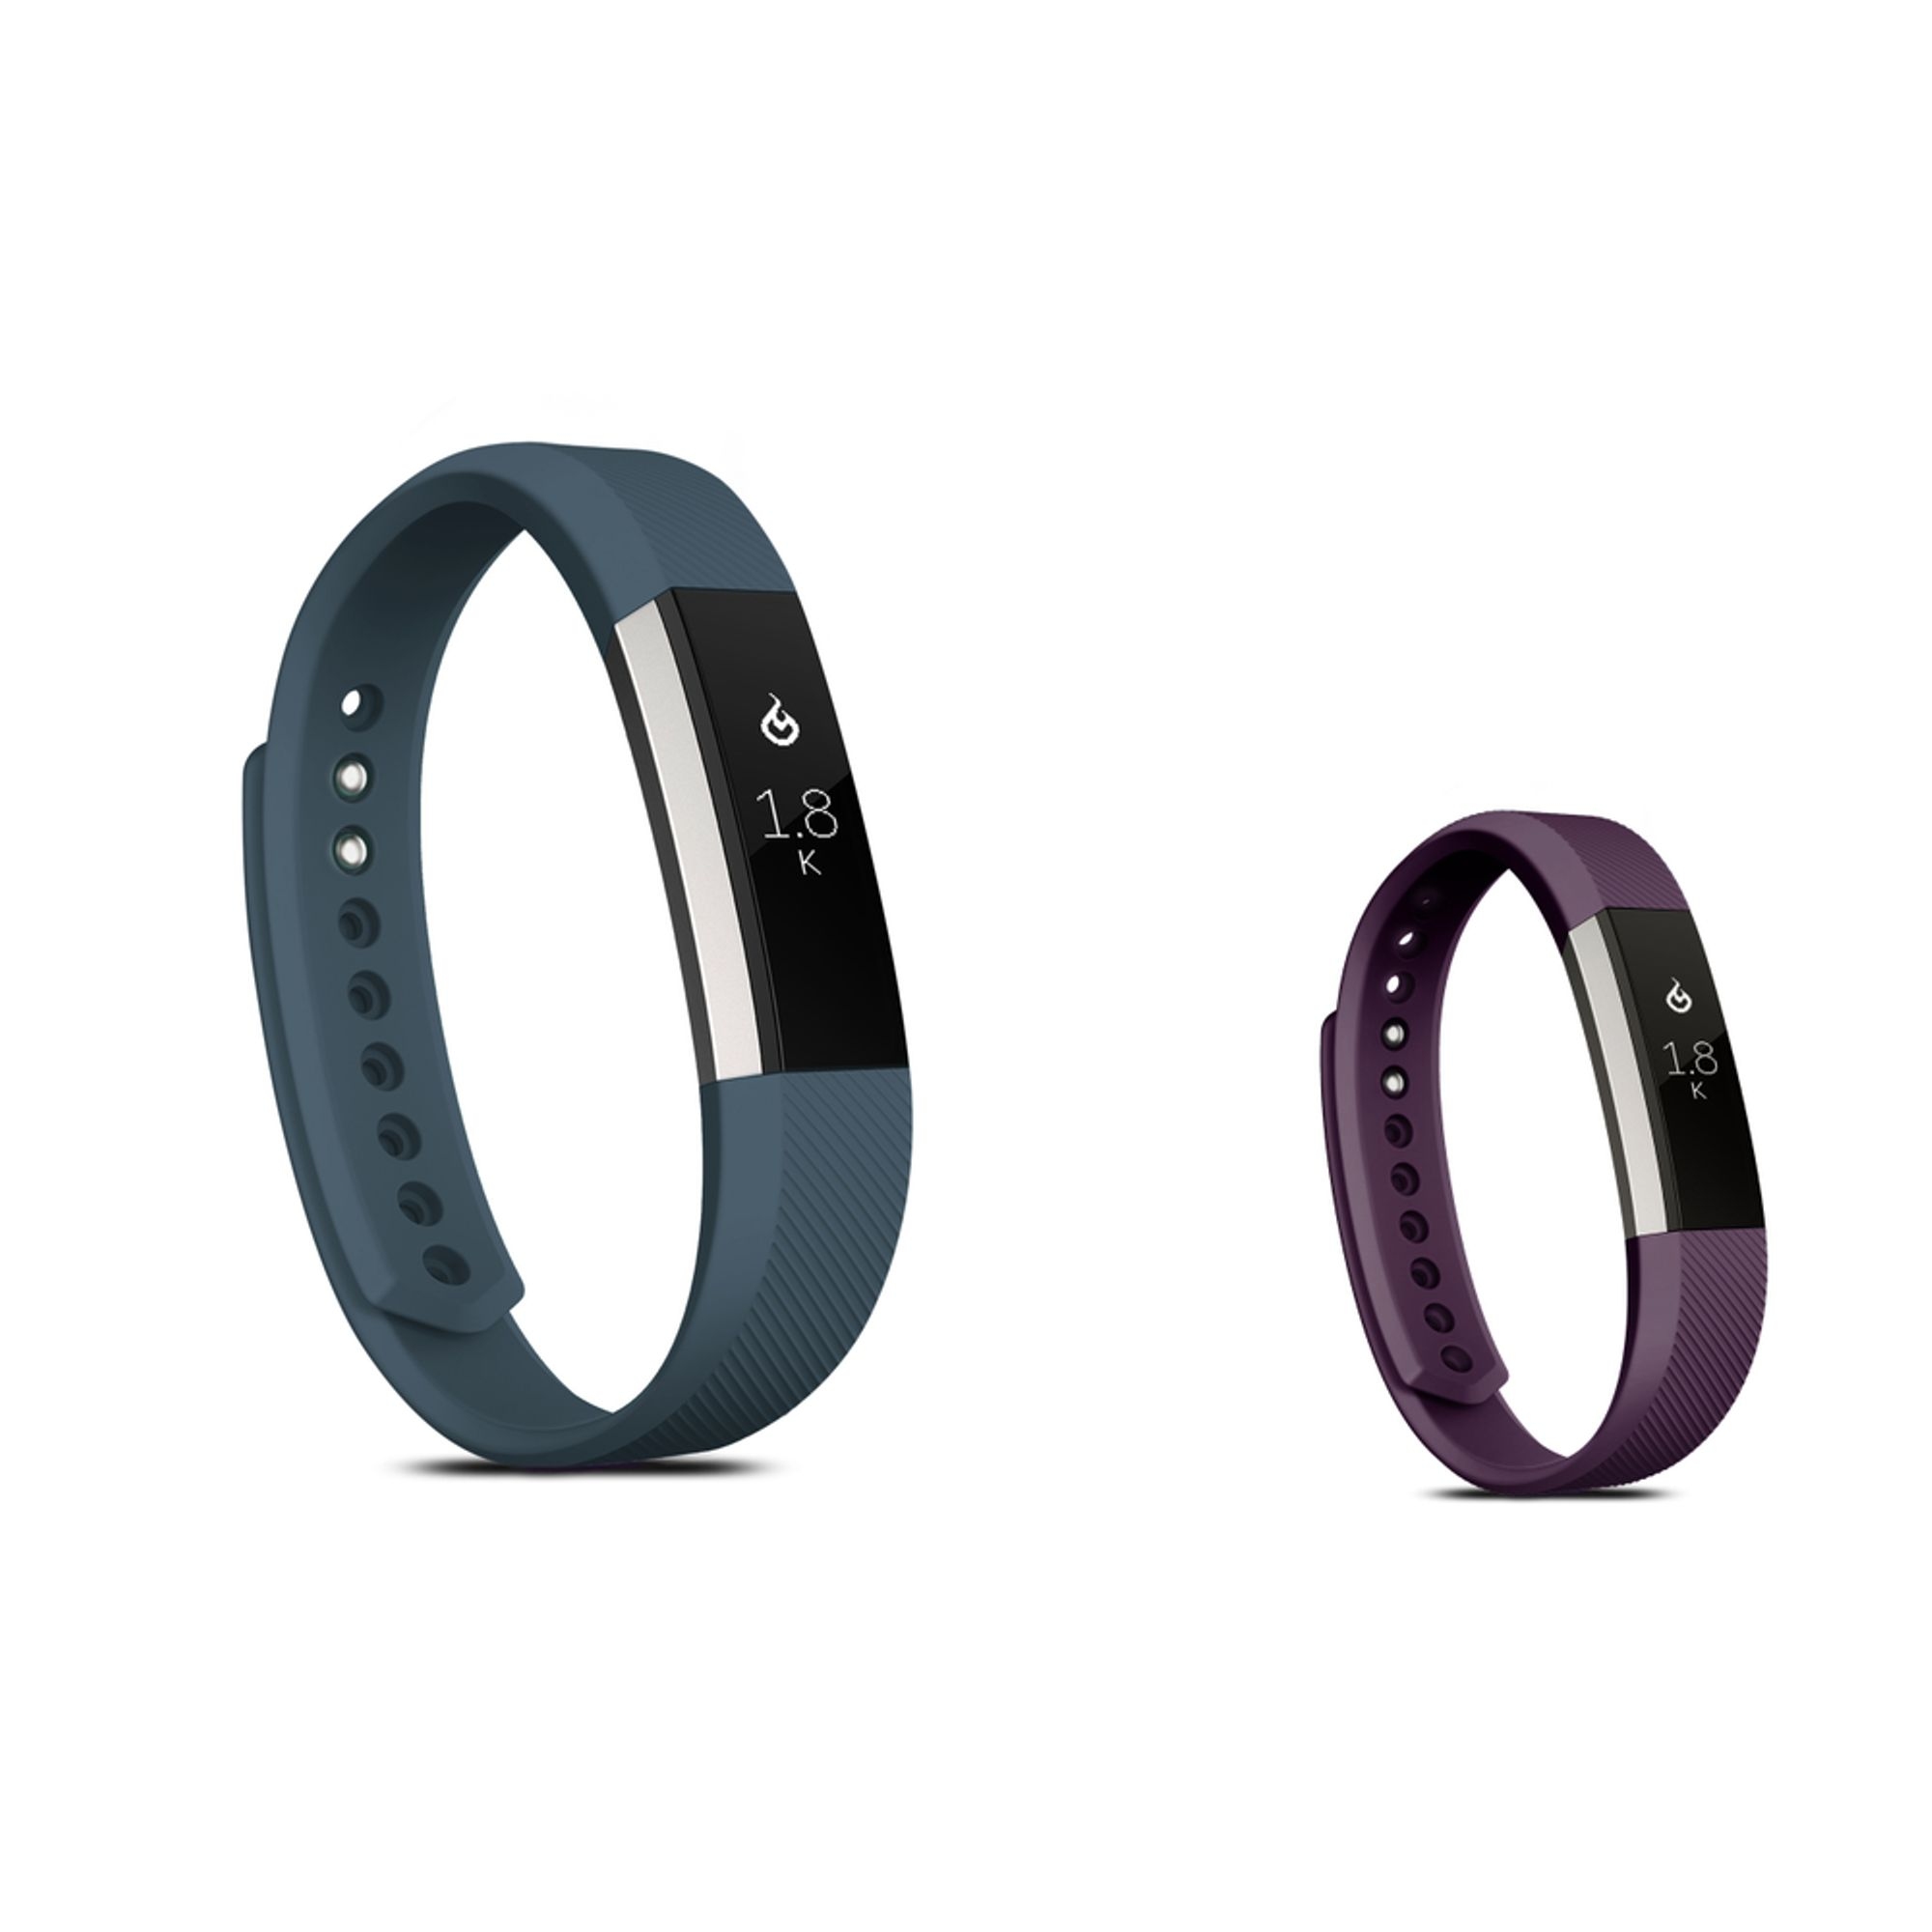 Zodaca Soft TPU Rubber Adjustable Wristbands Watch Band Strap For Fitbit Alta HR / Alta LARGE Size - Dark Gray + Purple